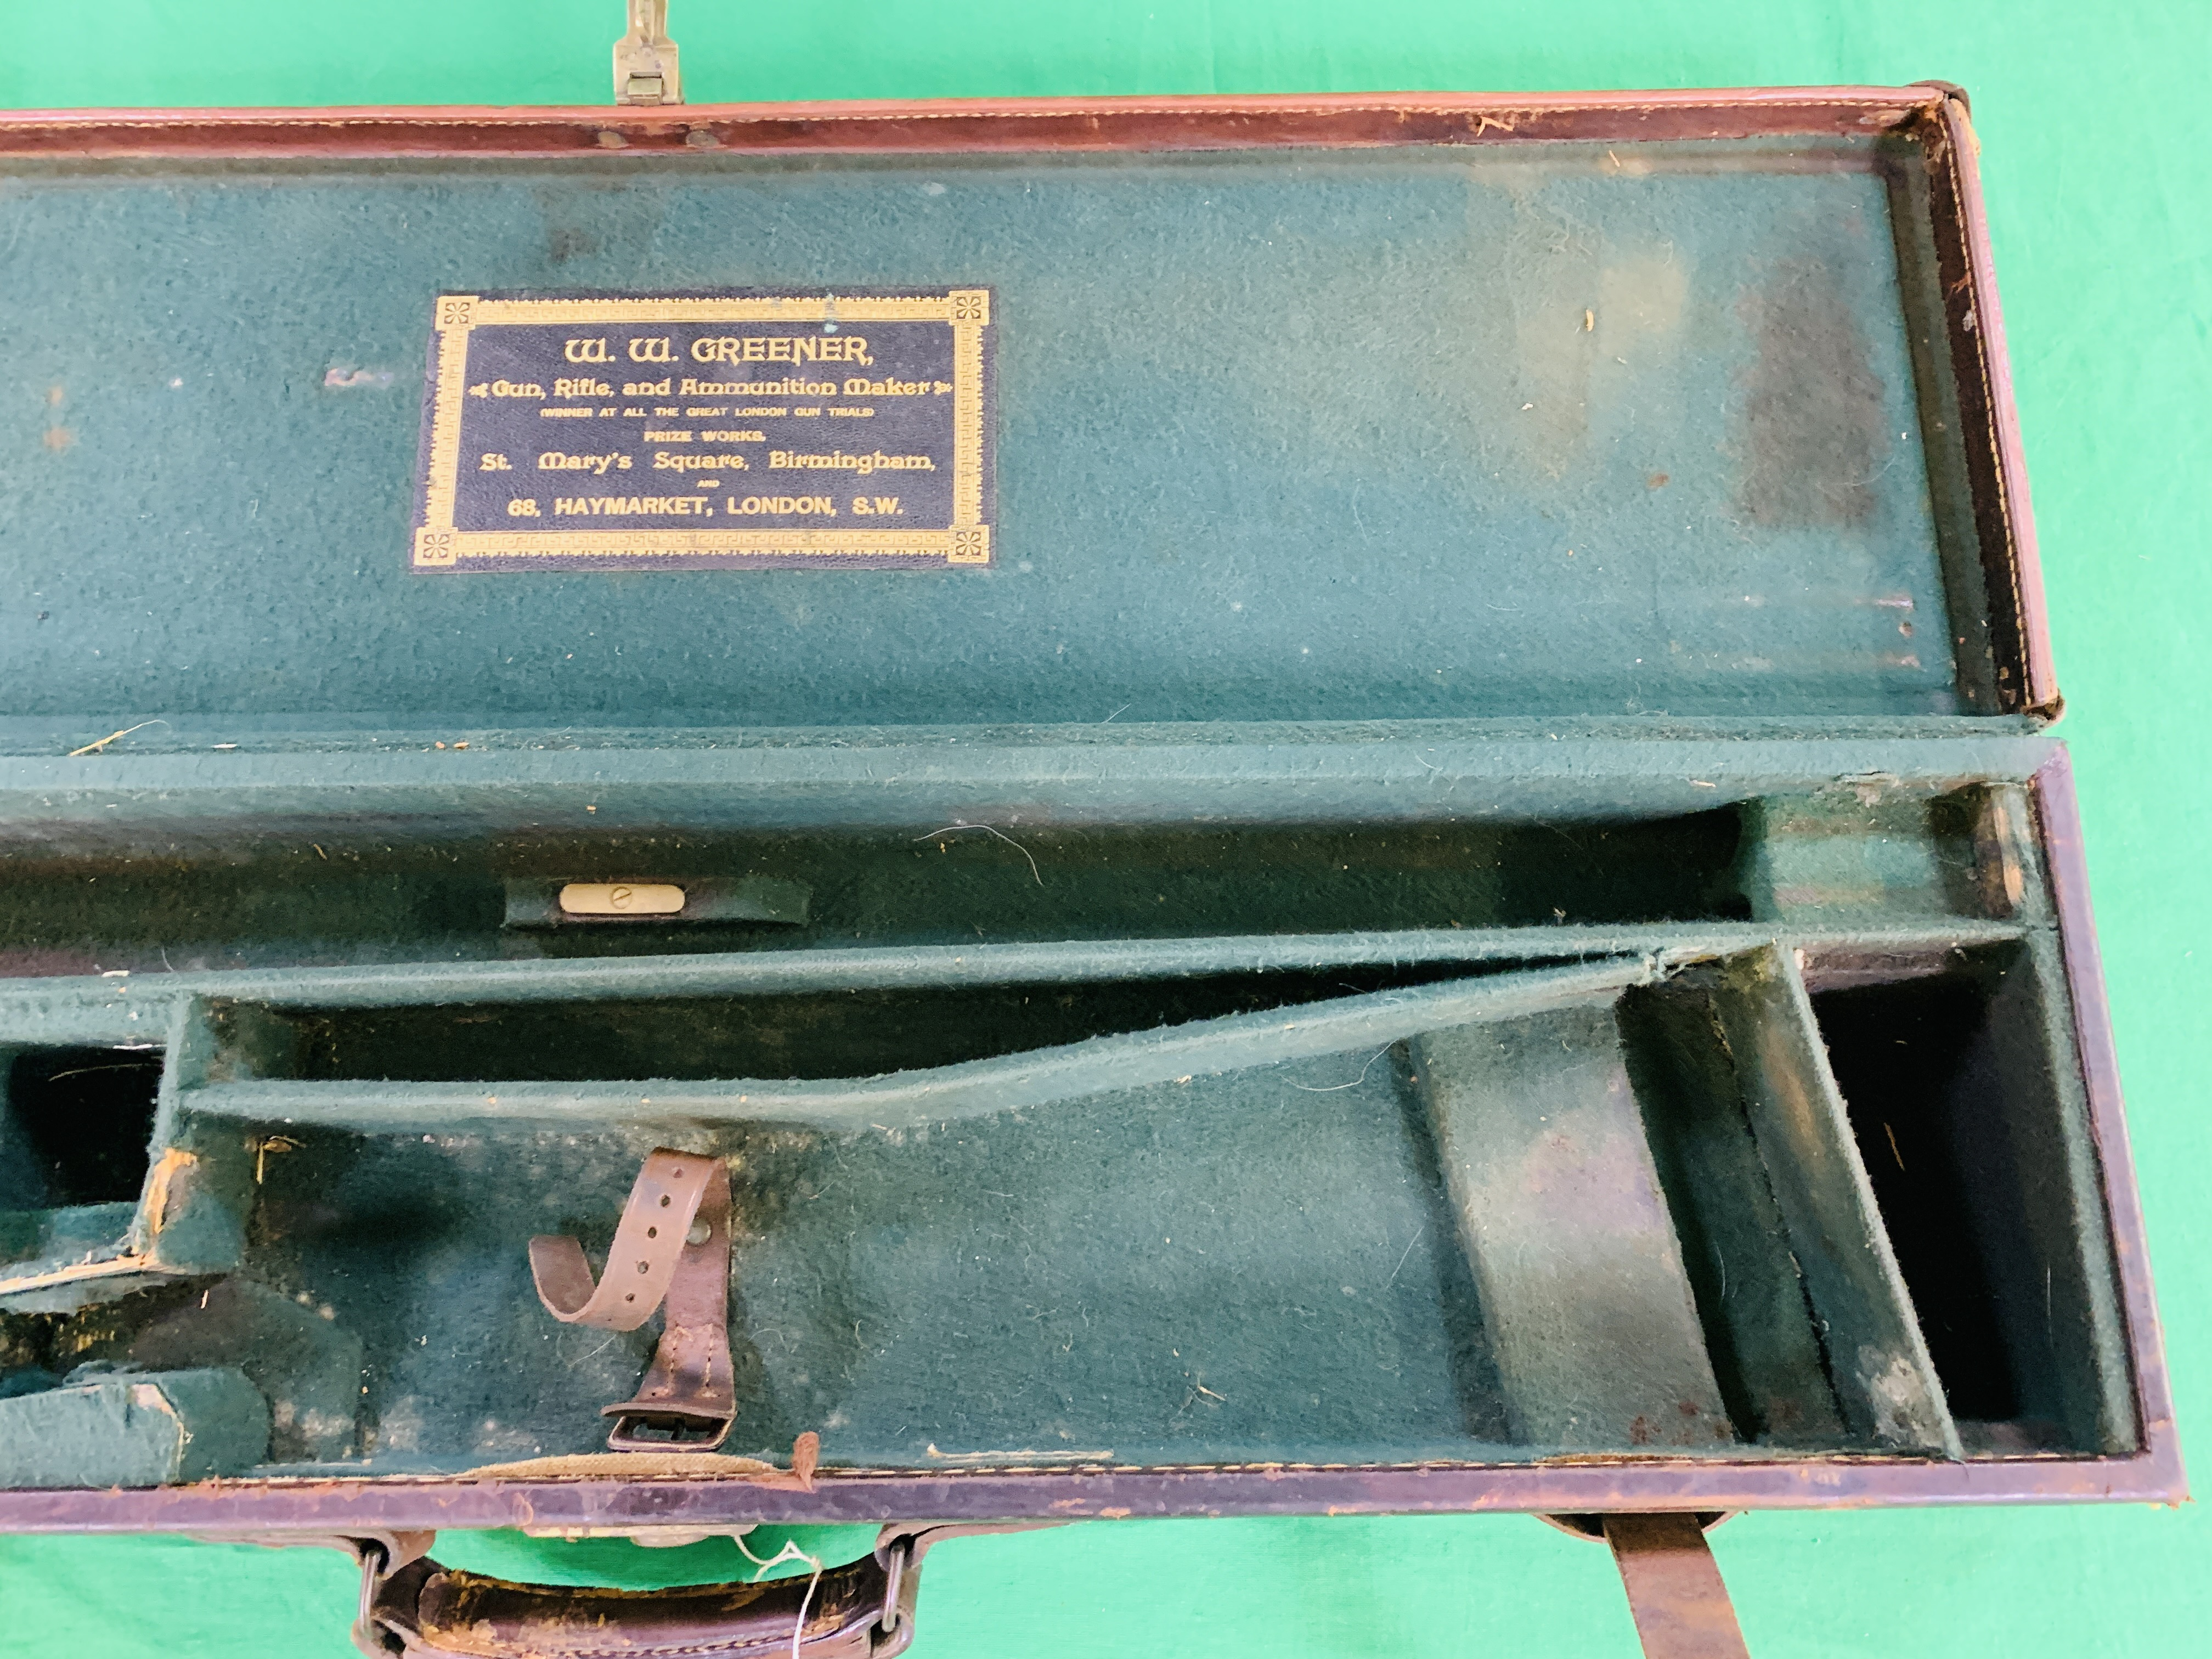 """BEST LEATHER 30"""" SIDE BY SIDE GUN CASE WITH W.W. - Image 4 of 10"""